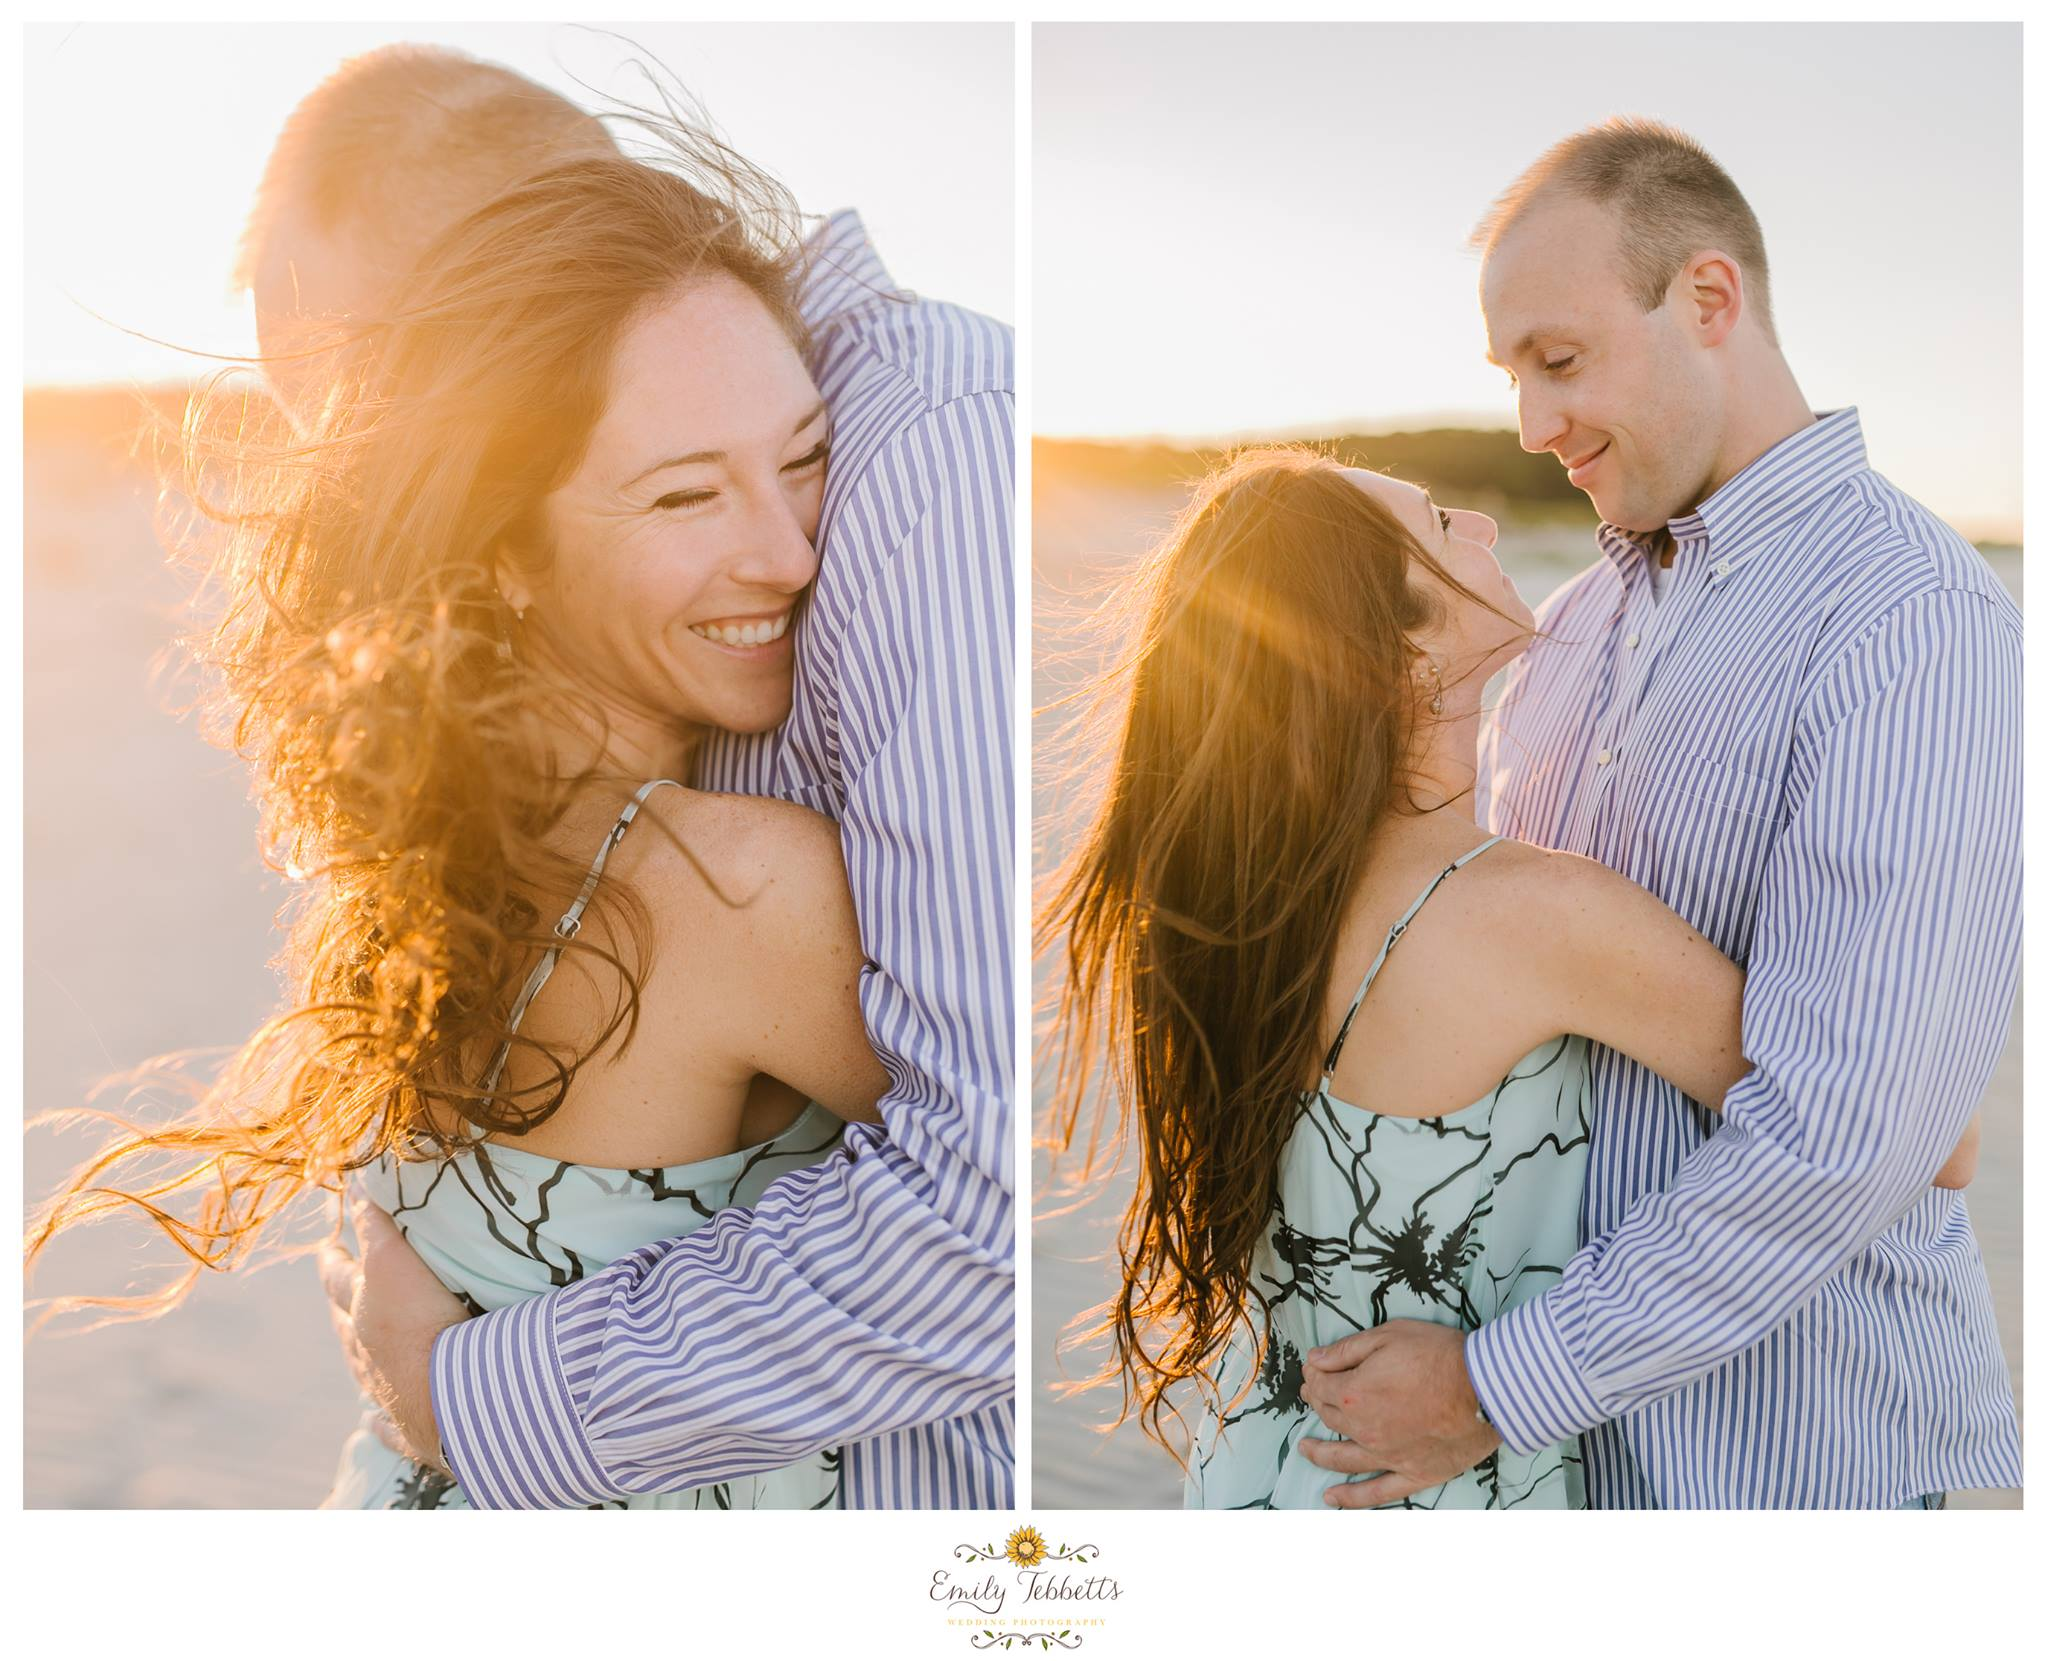 Emily Tebbetts Photography Engagement Session || Crane Beach, Ipswhich, MA 4.jpg